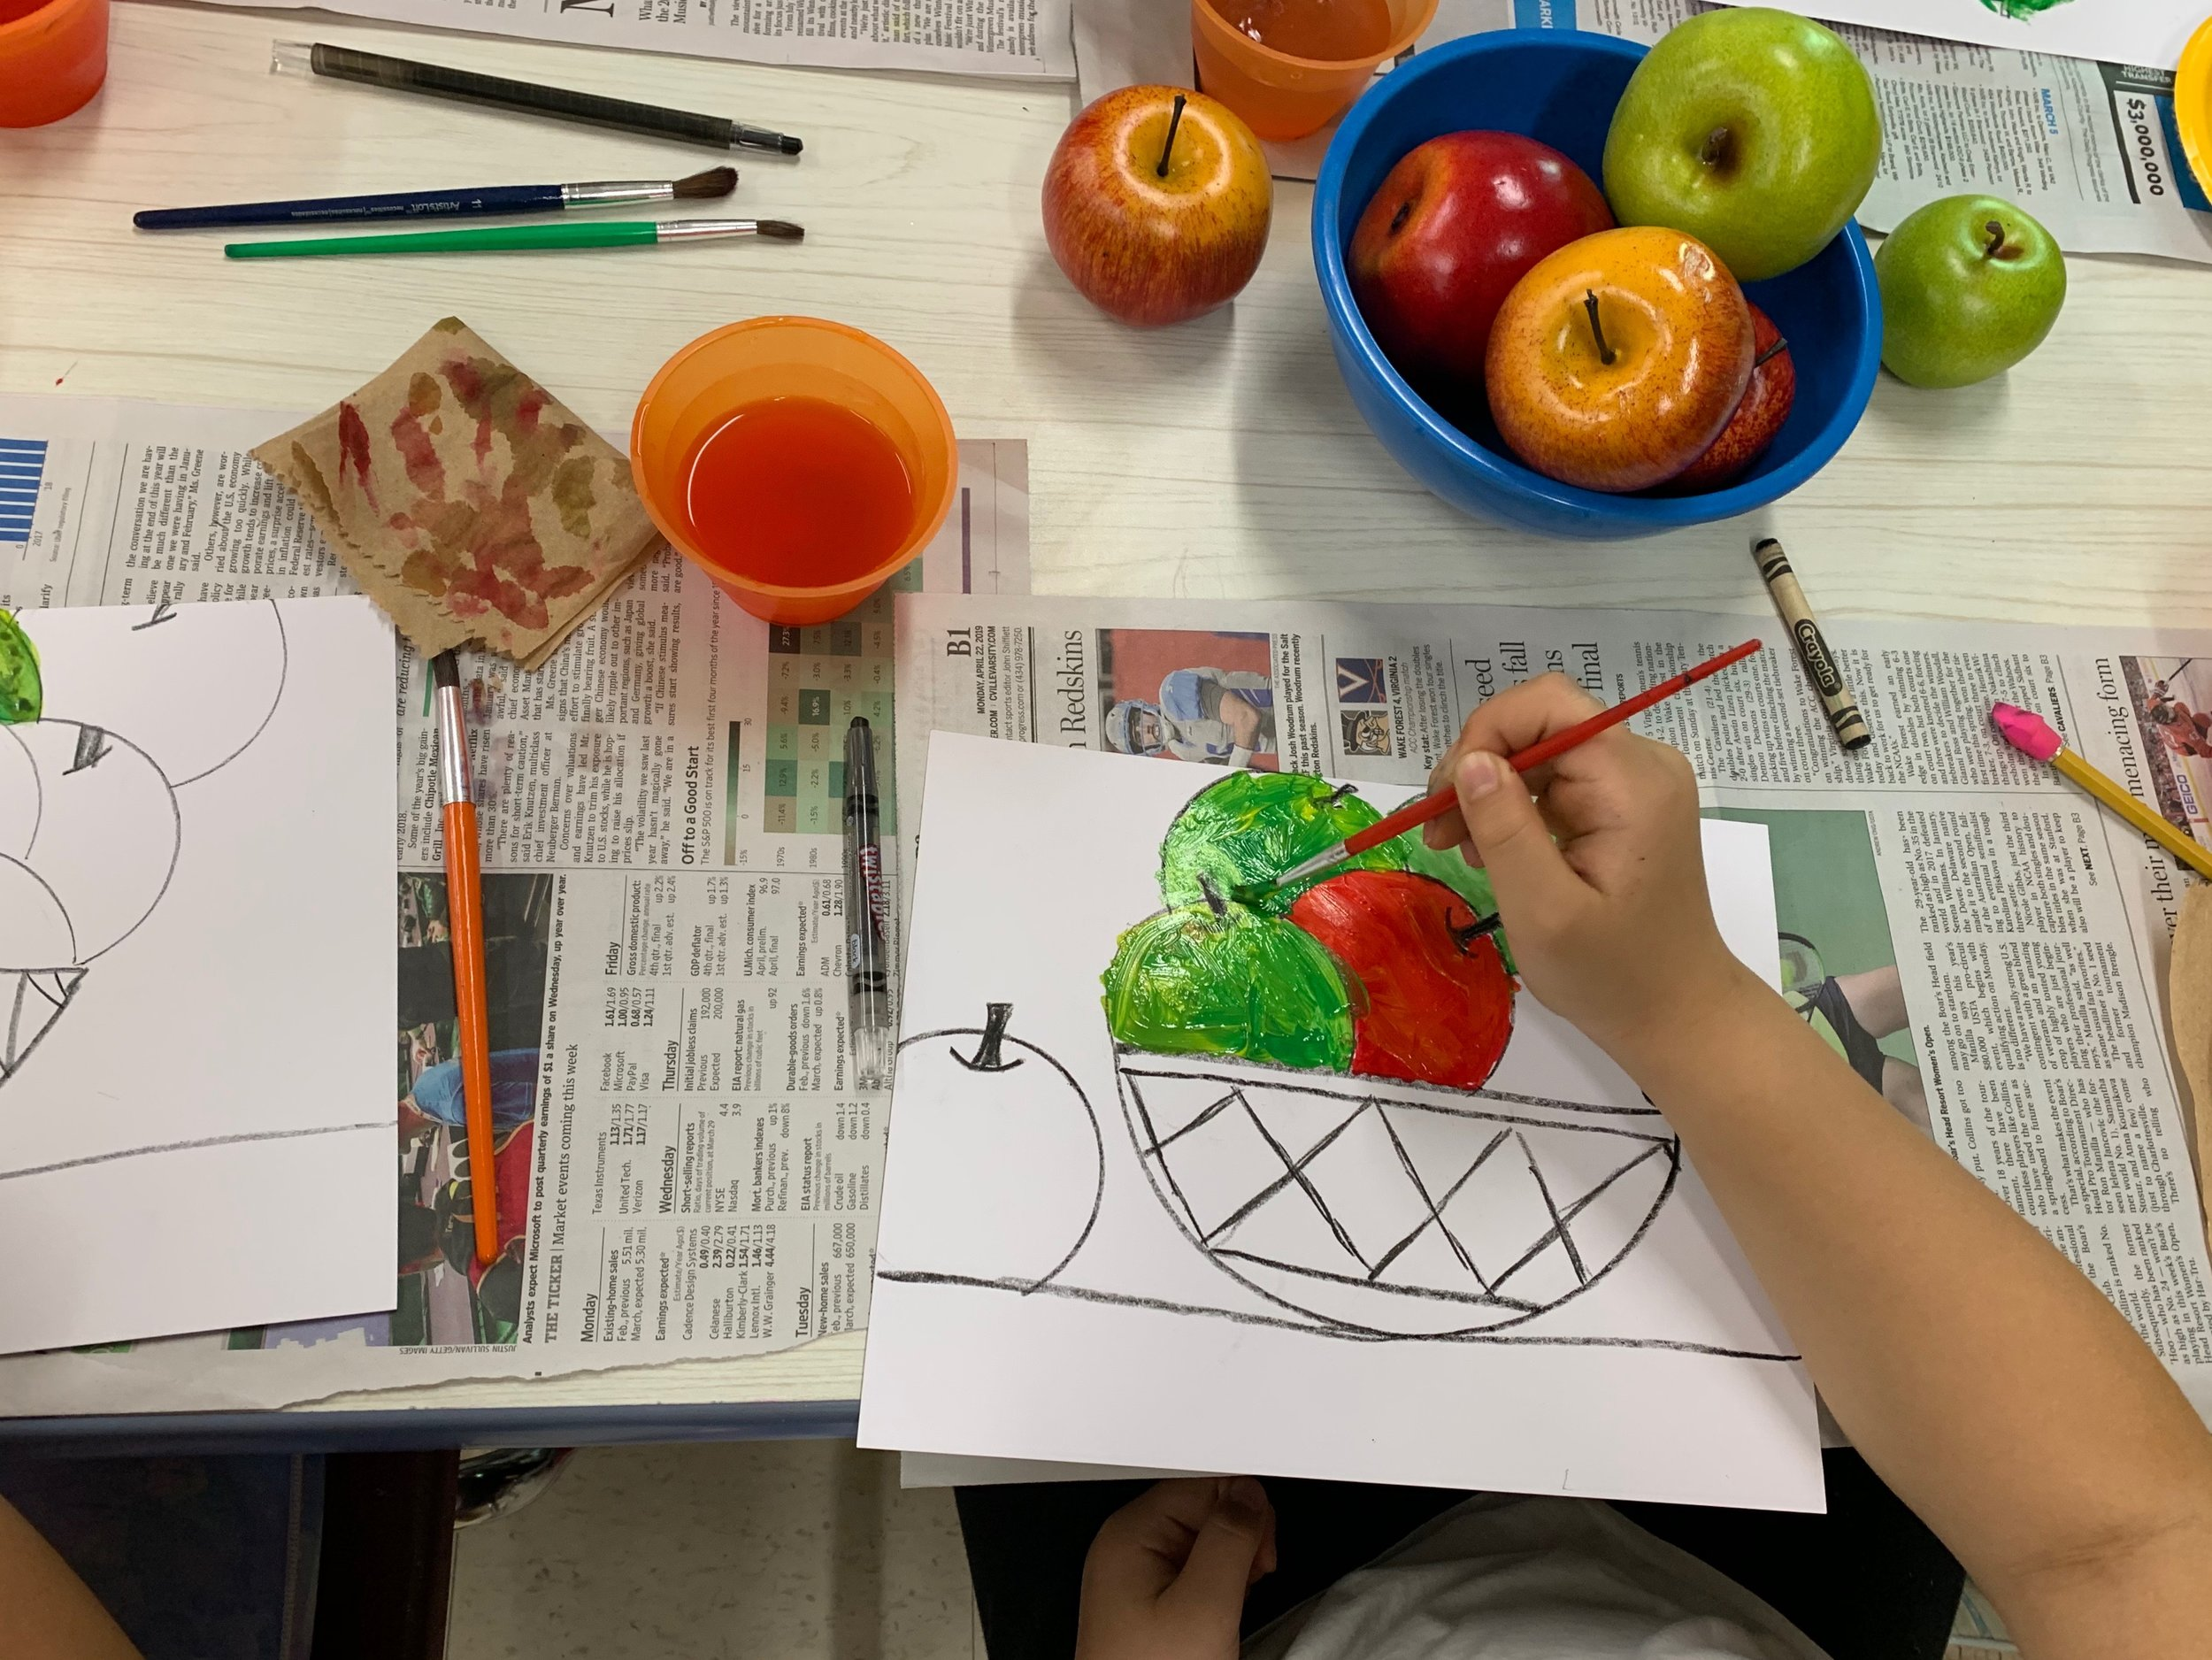 Nature morte from Paul Cezanne (Art program) at Hollymead Elementary, Spring 2019